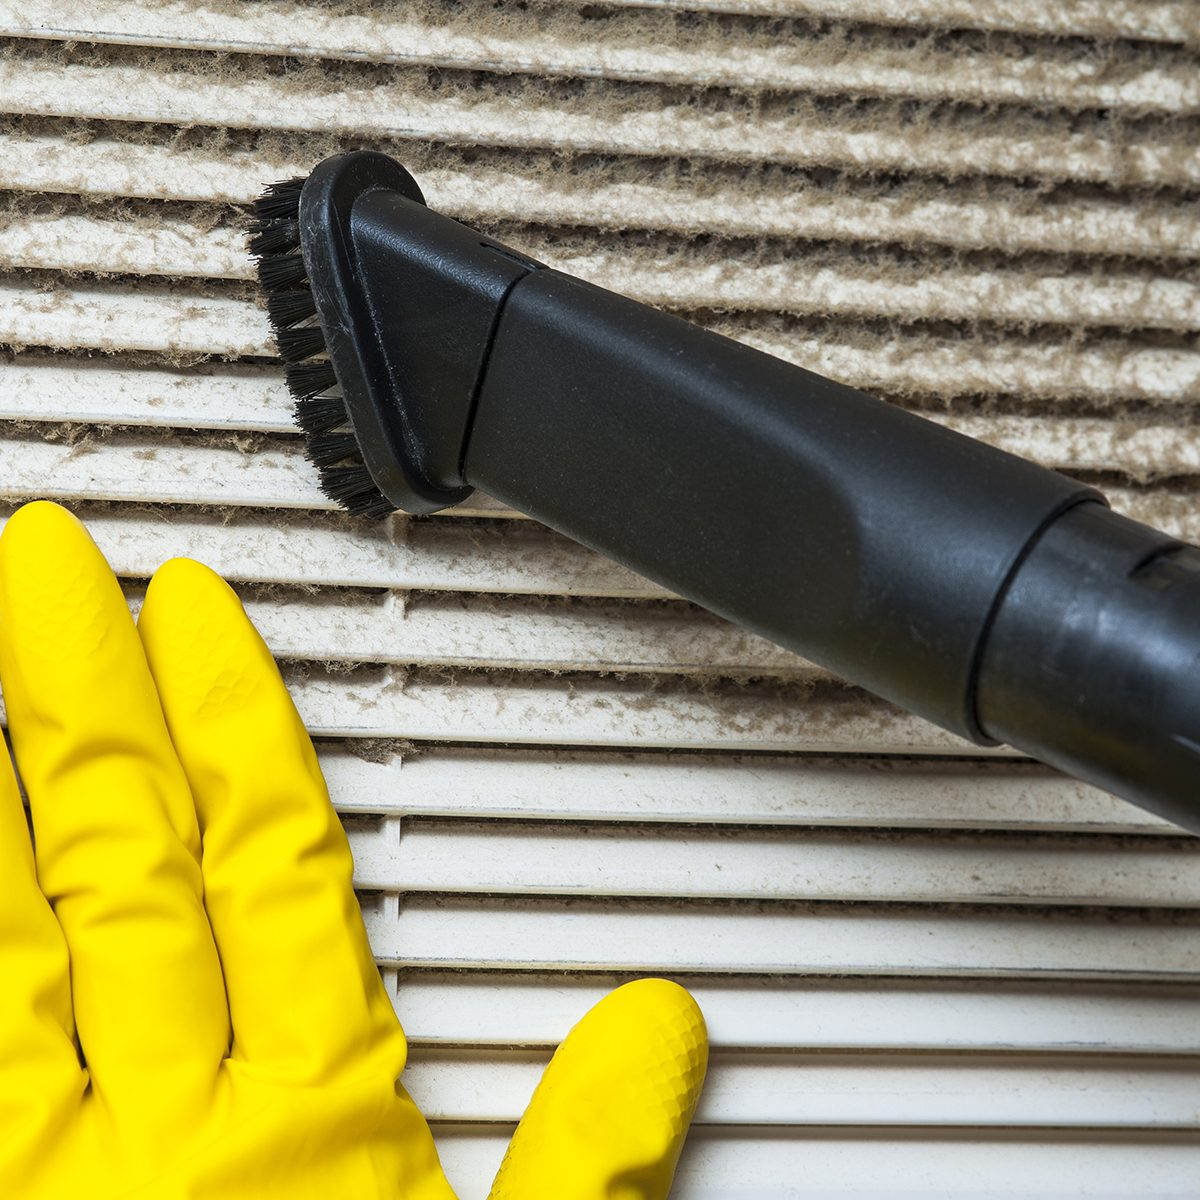 Hand in yellow glove and vacuum cleaner pipe. Ventilation grill cleaning.; Shutterstock ID 389950375; Job (TFH, TOH, RD, BNB, CWM, CM): TOH